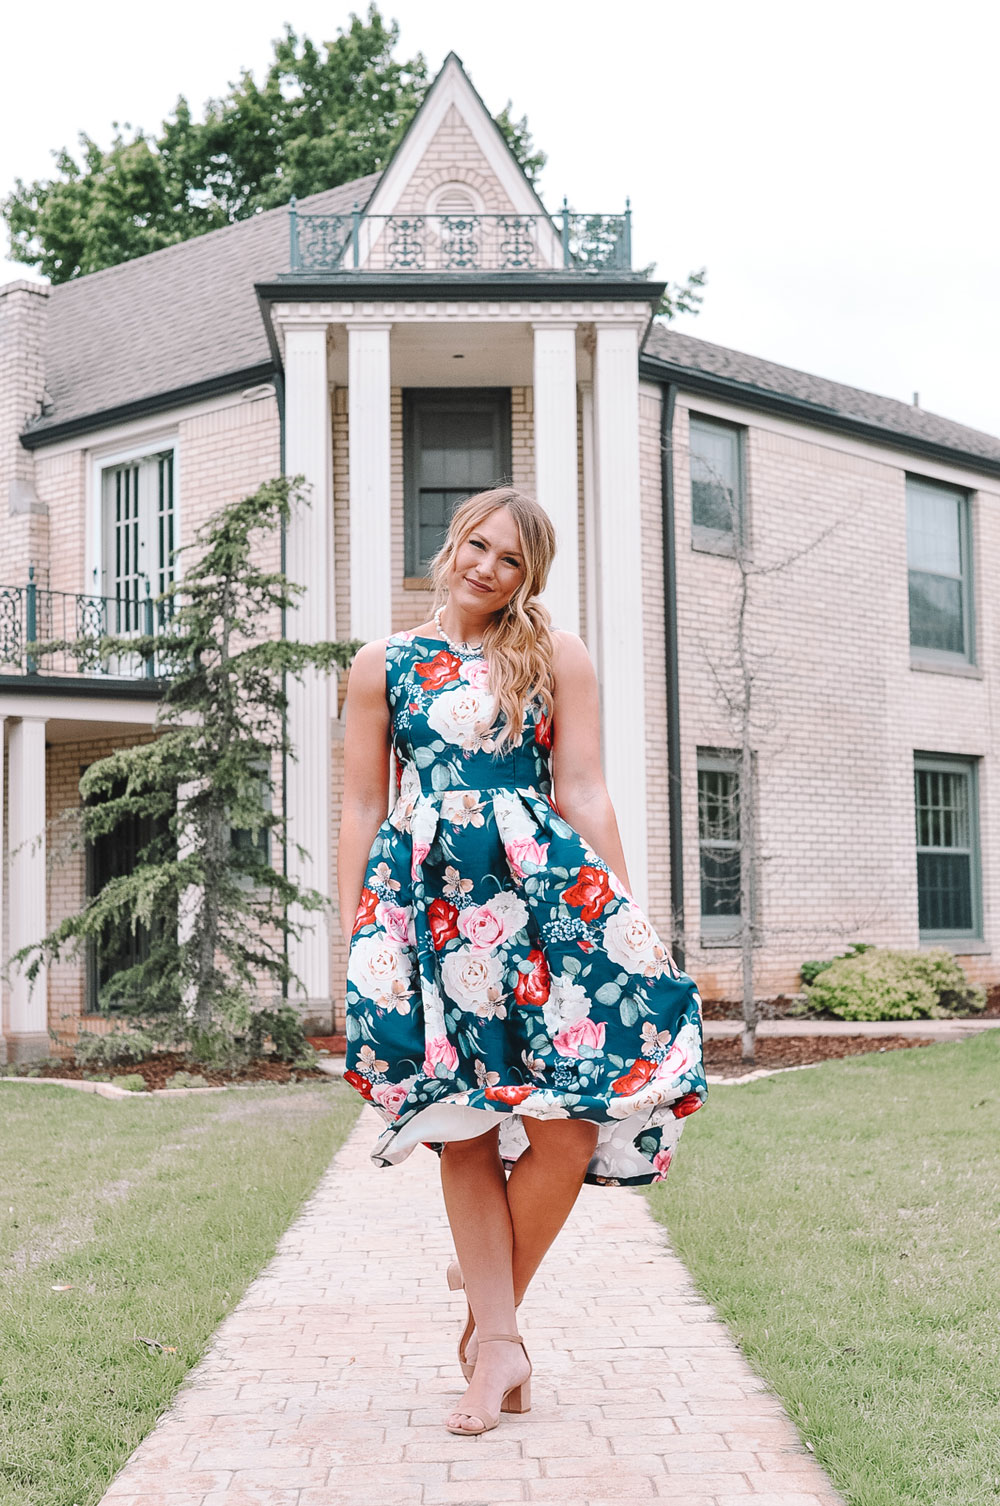 Amanda's OK wears a Retro Floral Dress with Pearls